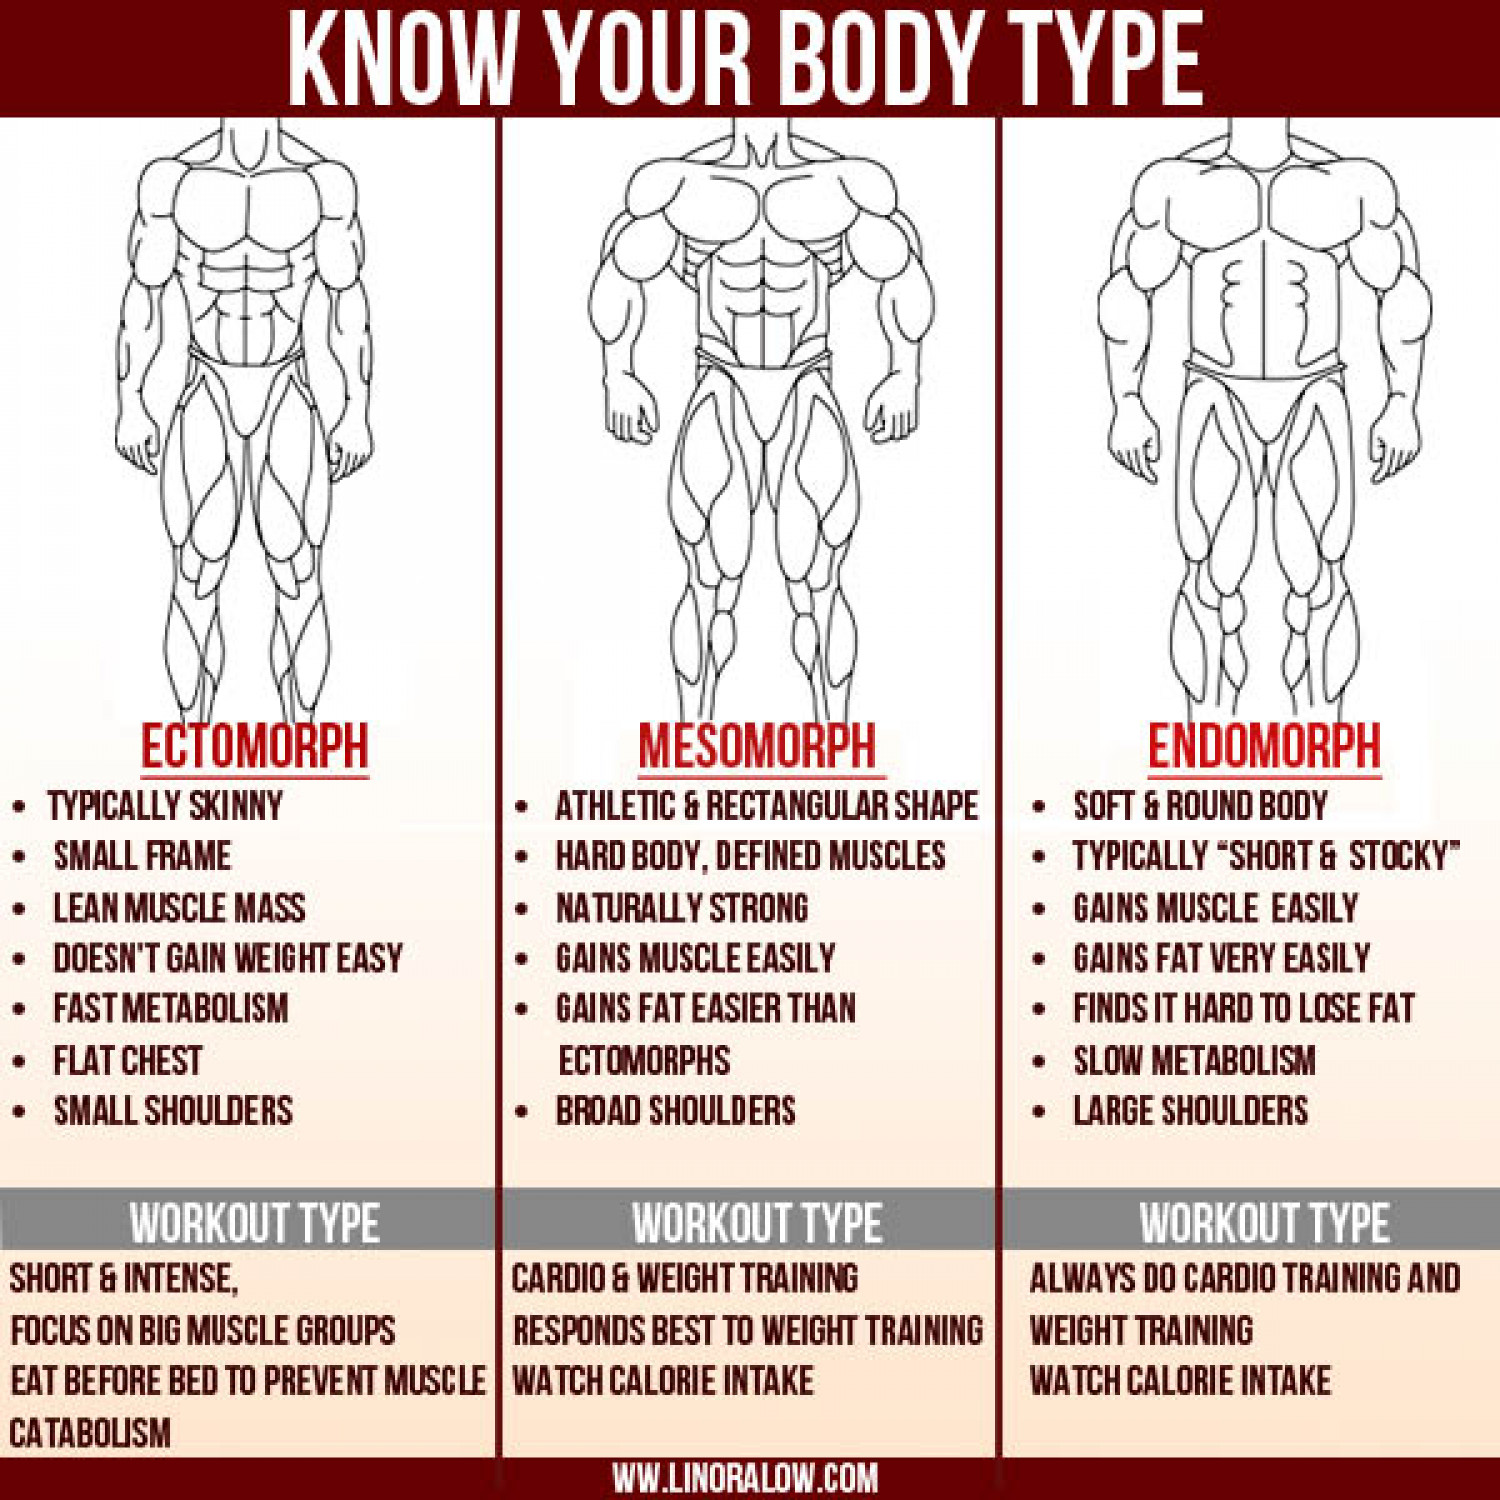 The 3 Body Types | Visual.ly